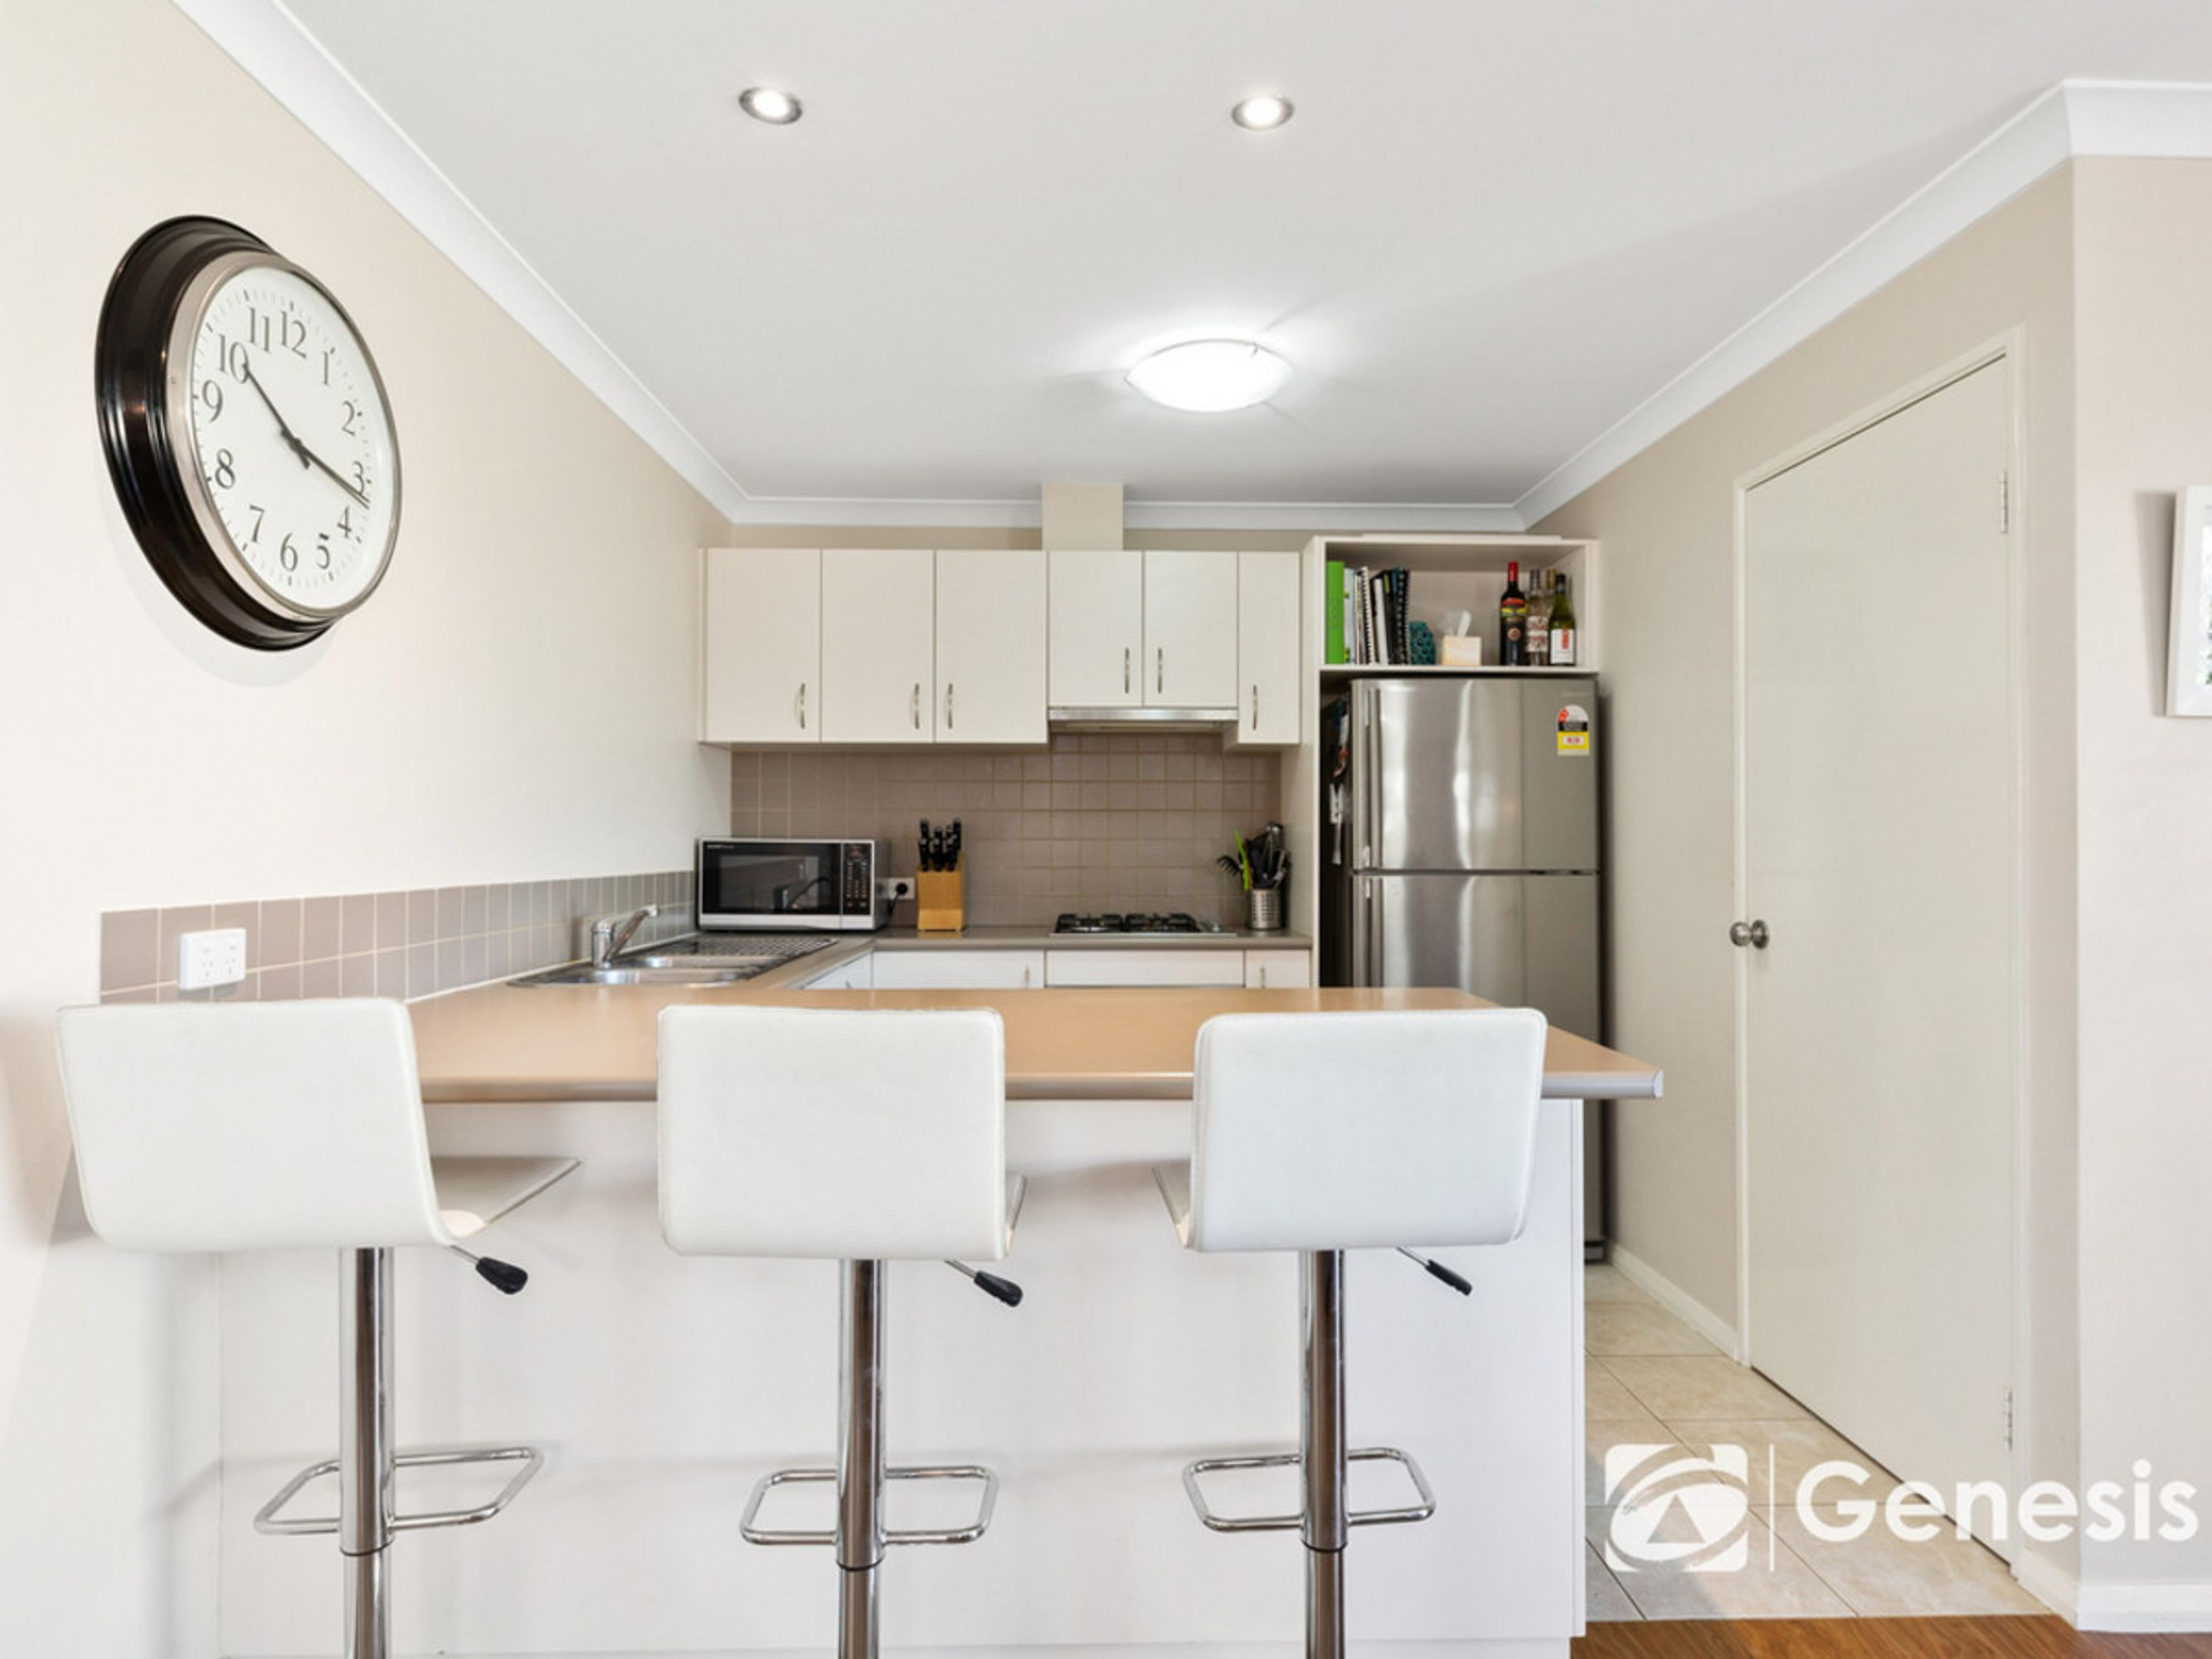 31/5 Calabrese Avenue, Wanneroo, WA 6065